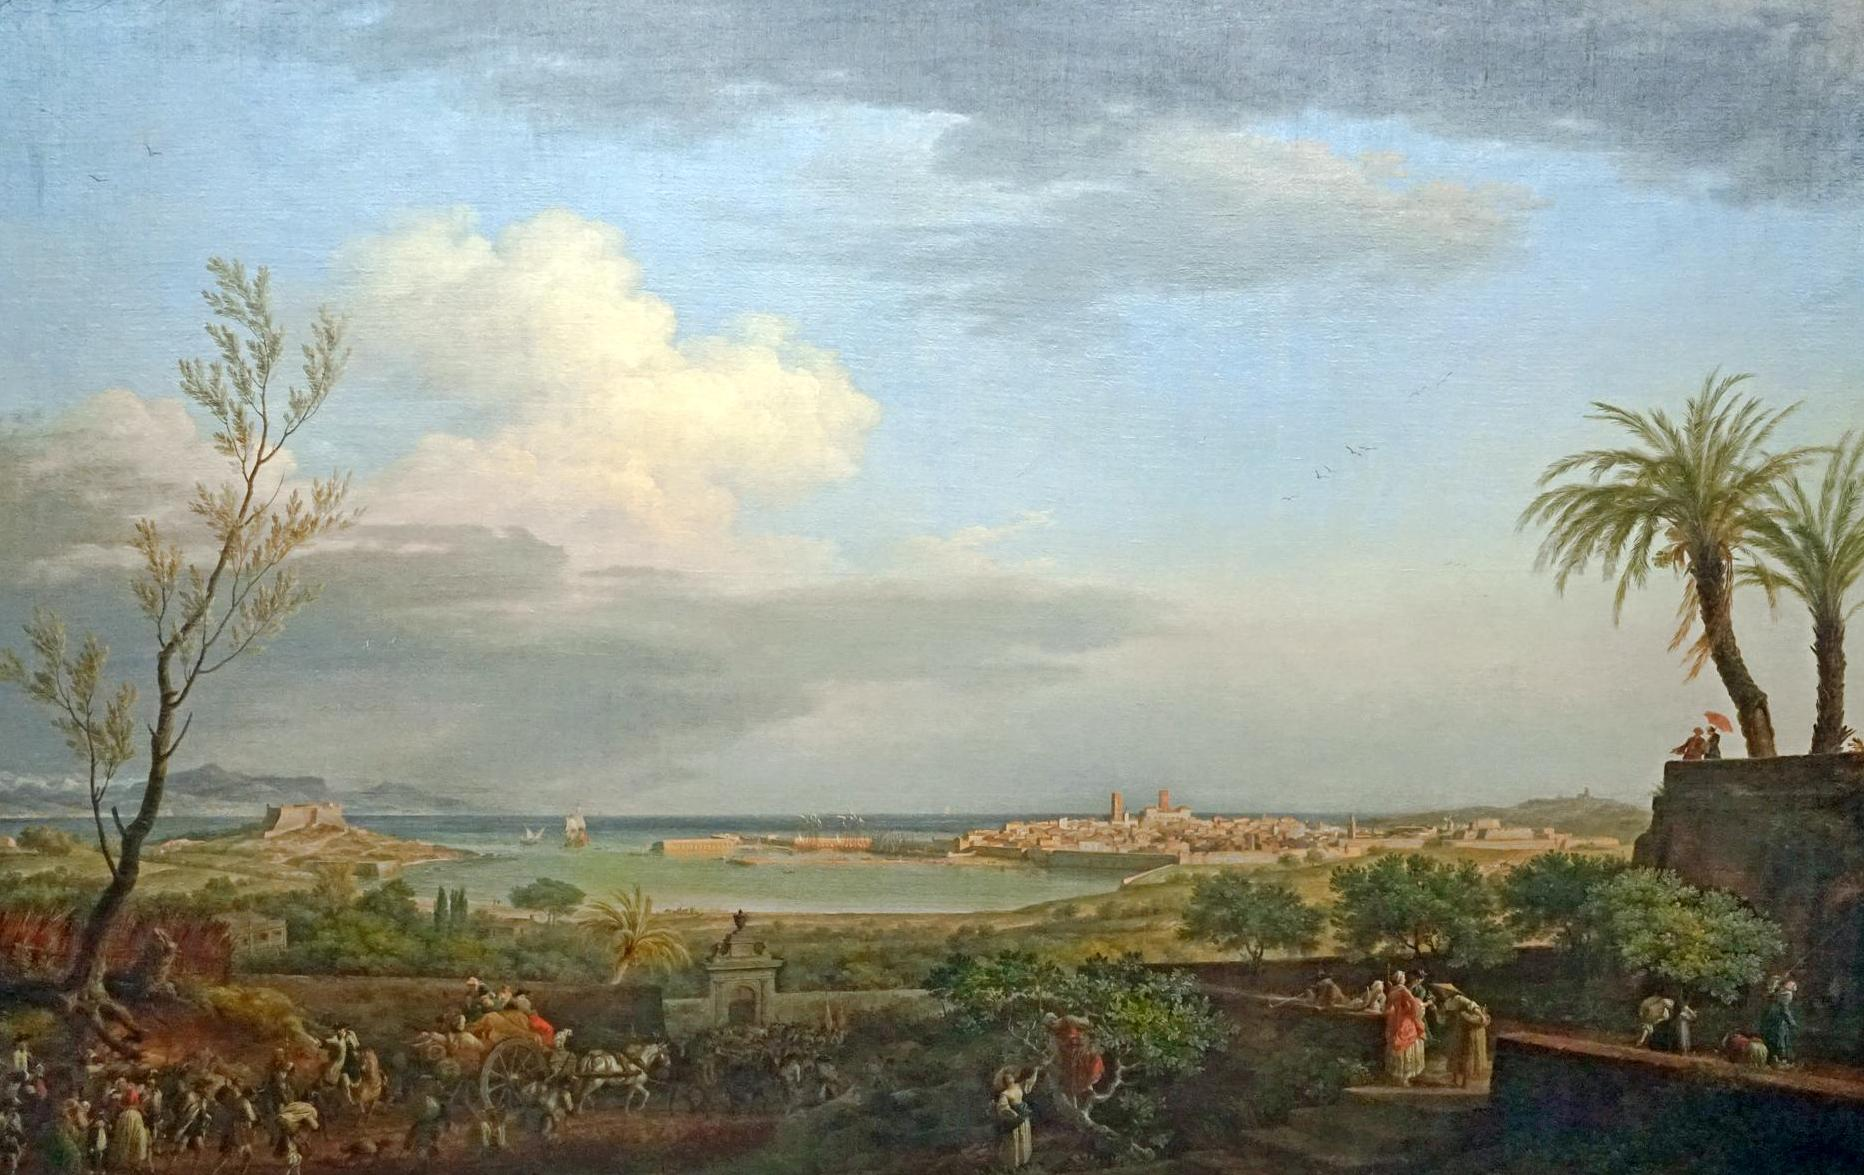 File la rade d 39 antibes par joseph vernet mus e national - Tableau du port de bordeaux par vernet ...